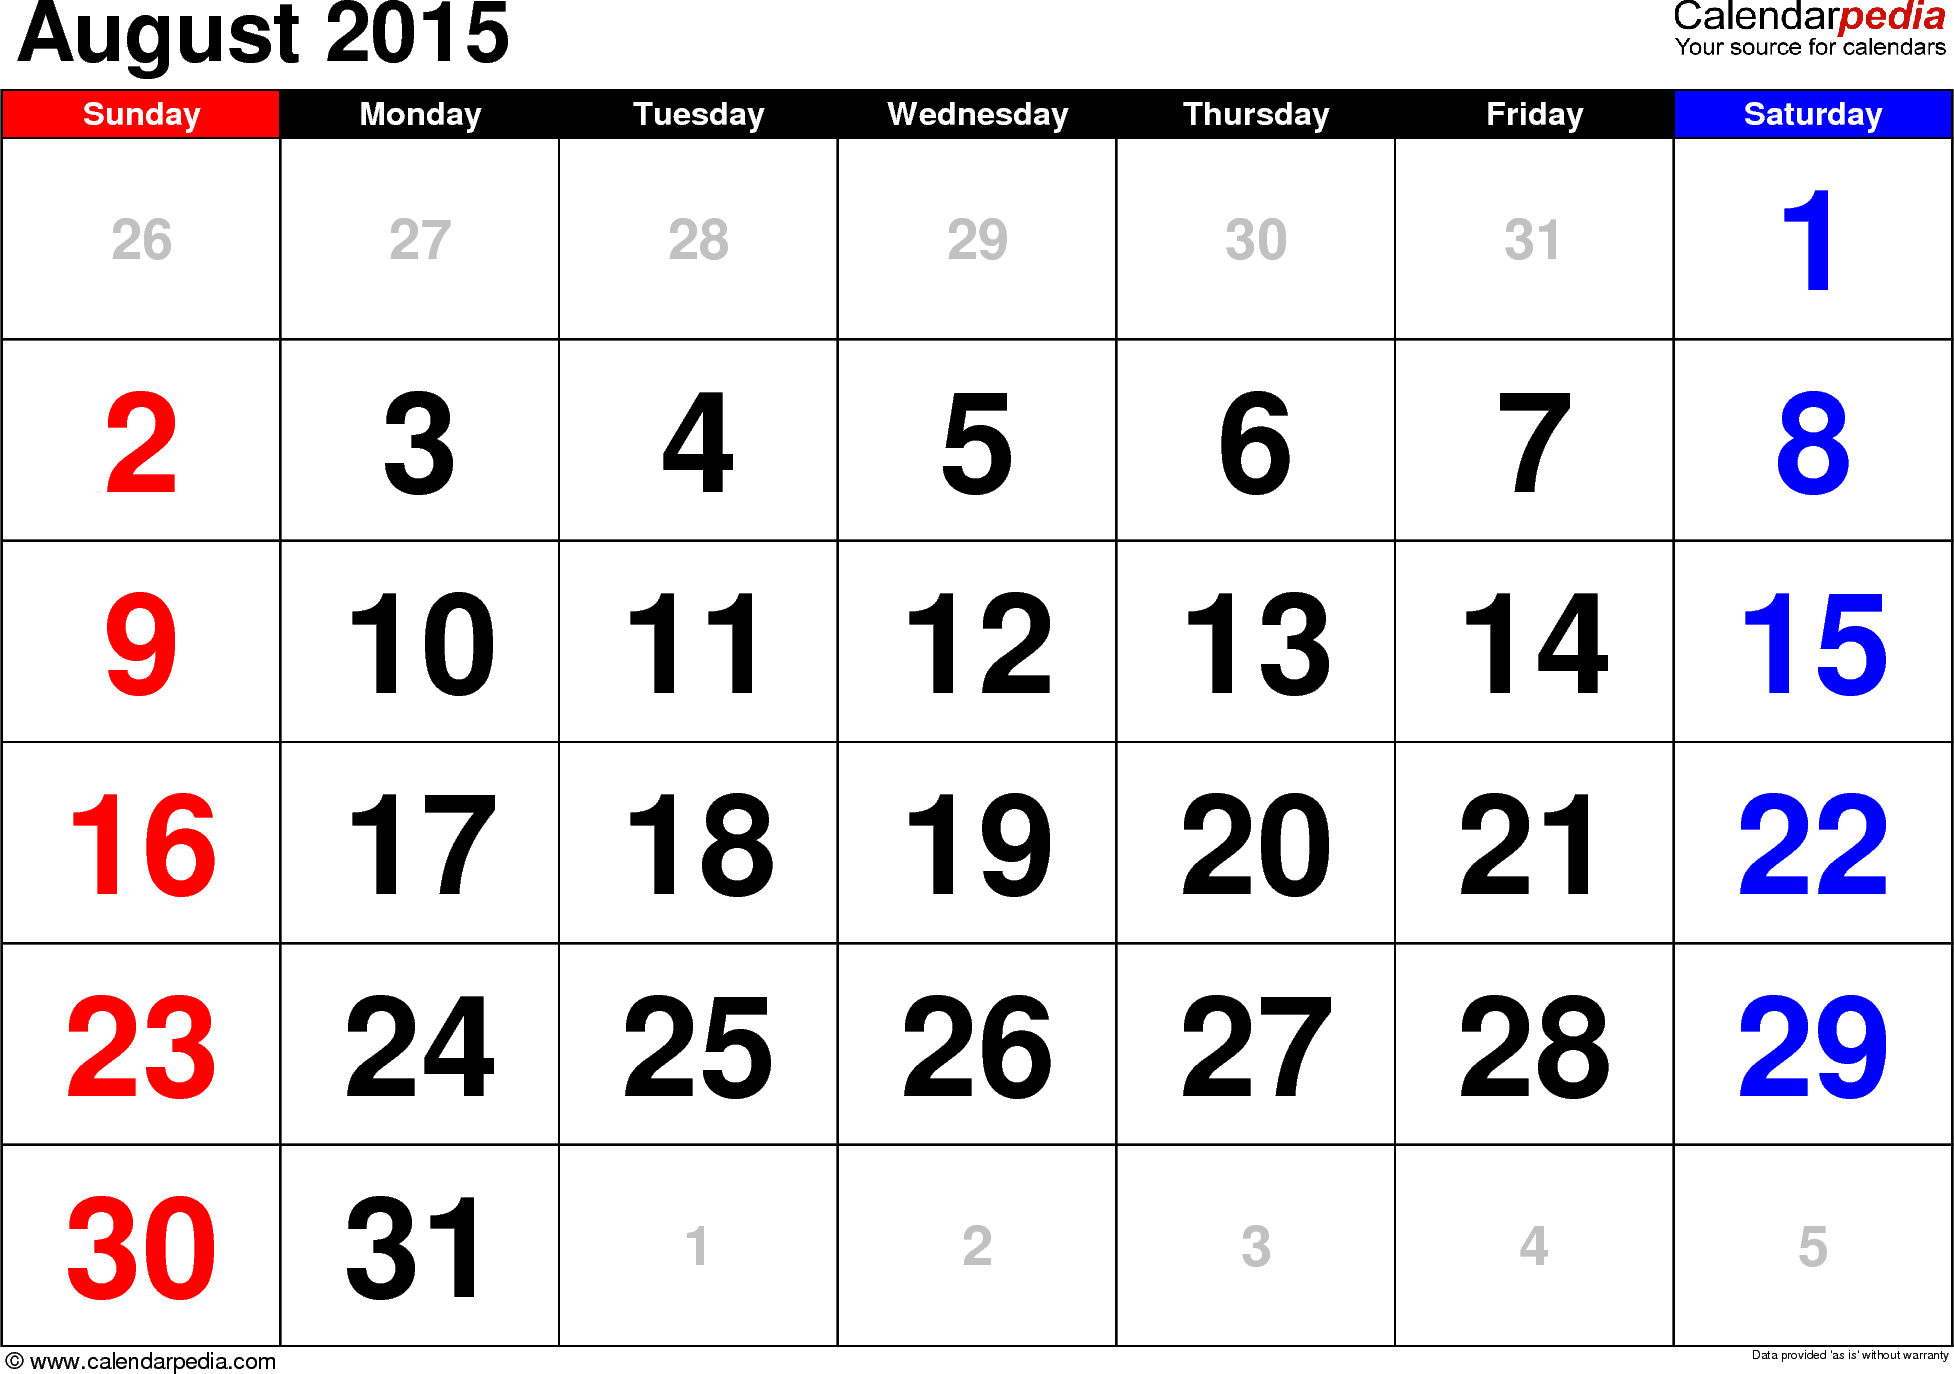 Gujarati Calendar 2015 With Holidays Pdf